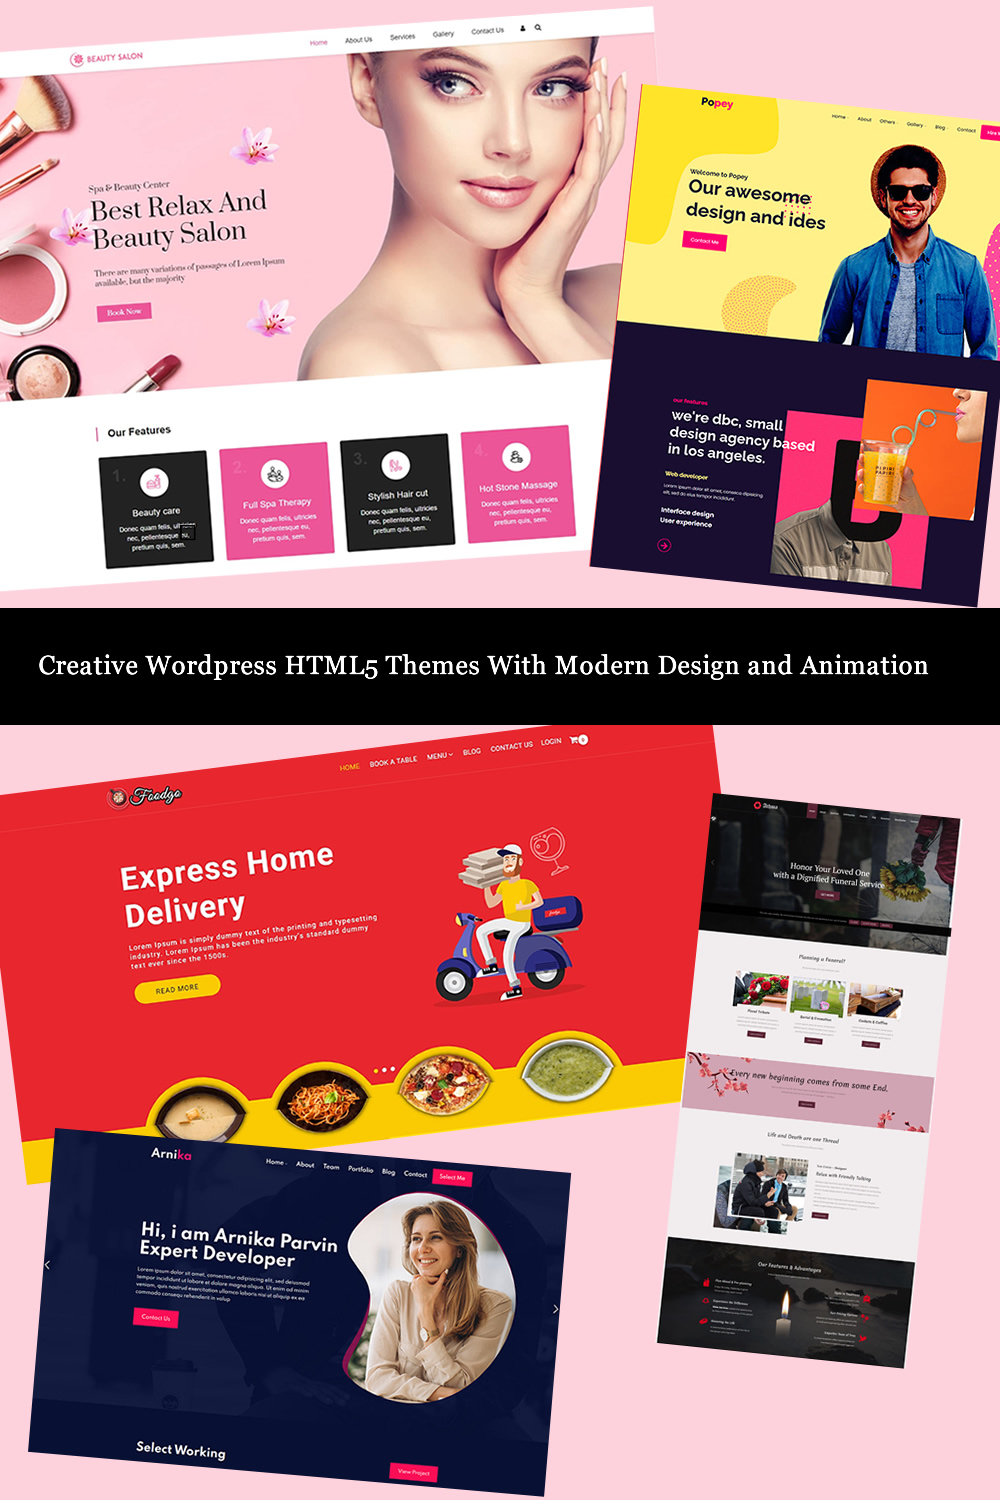 Creative Wordpress HTML5 Themes With Modern Design and Animation